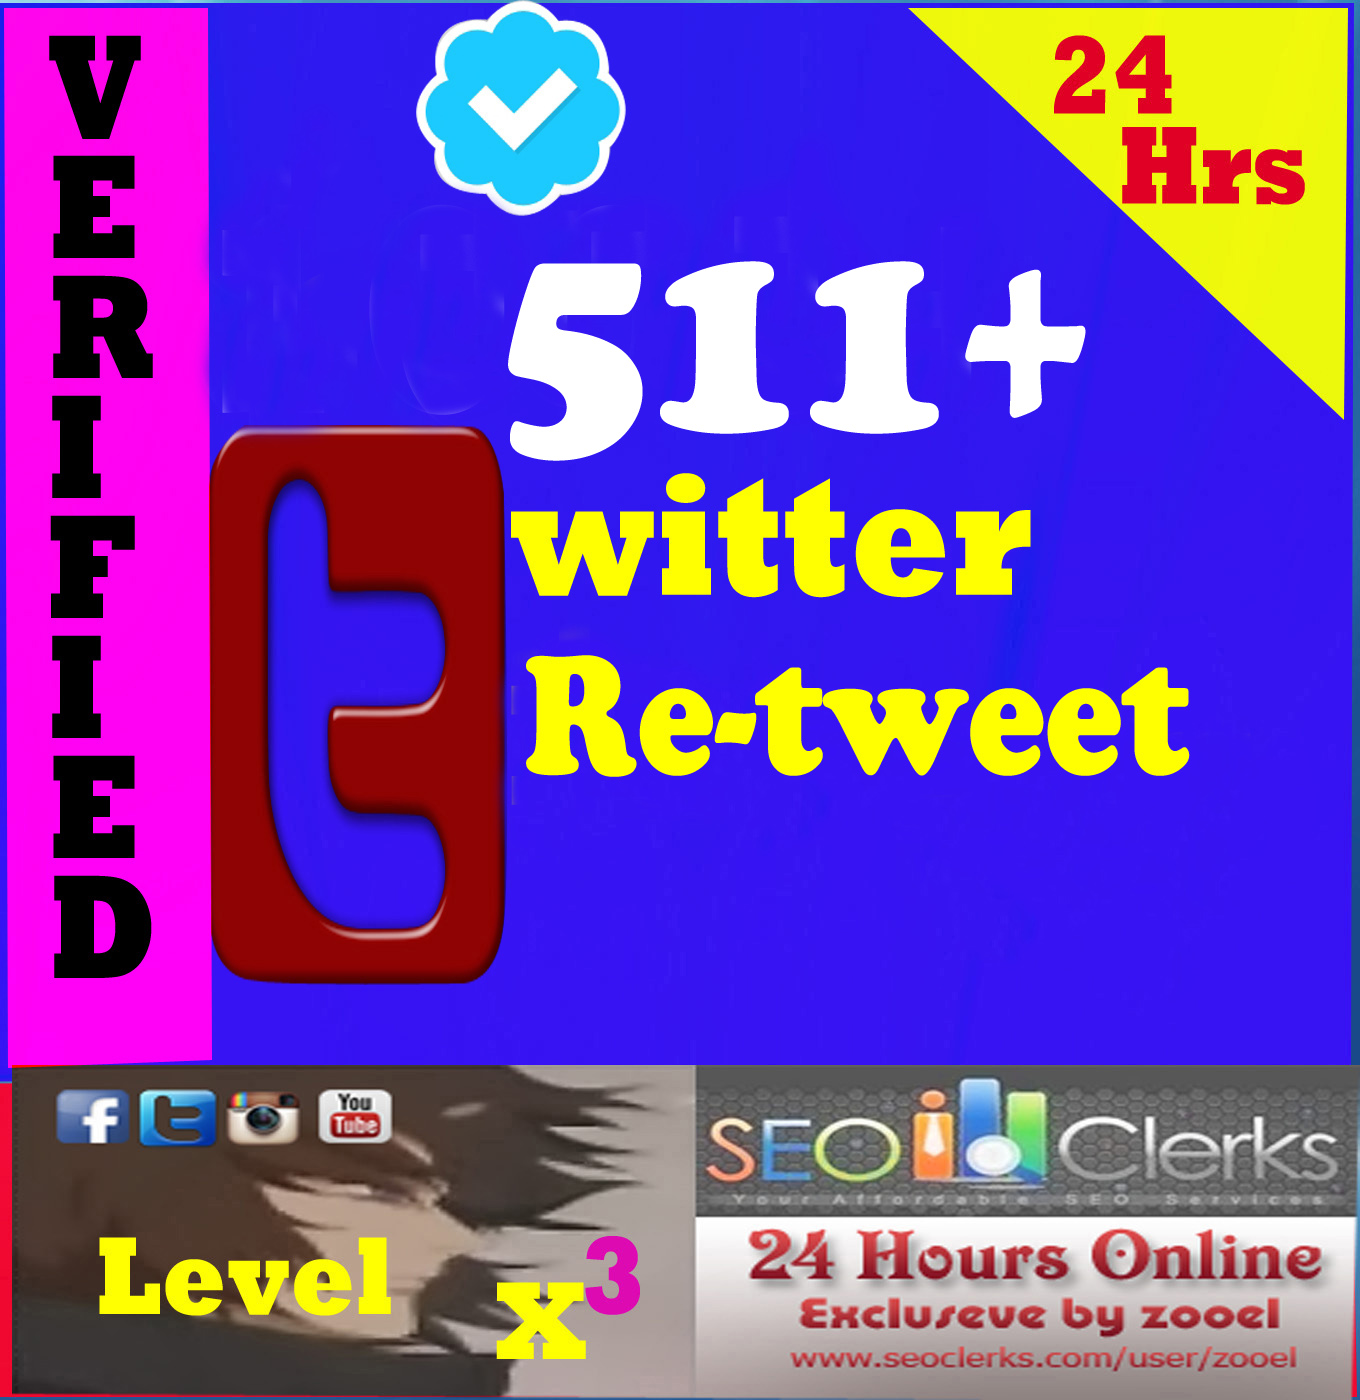 High Quality 511+ Twitter Retweets or favorites or Followers from 511+ Different Users